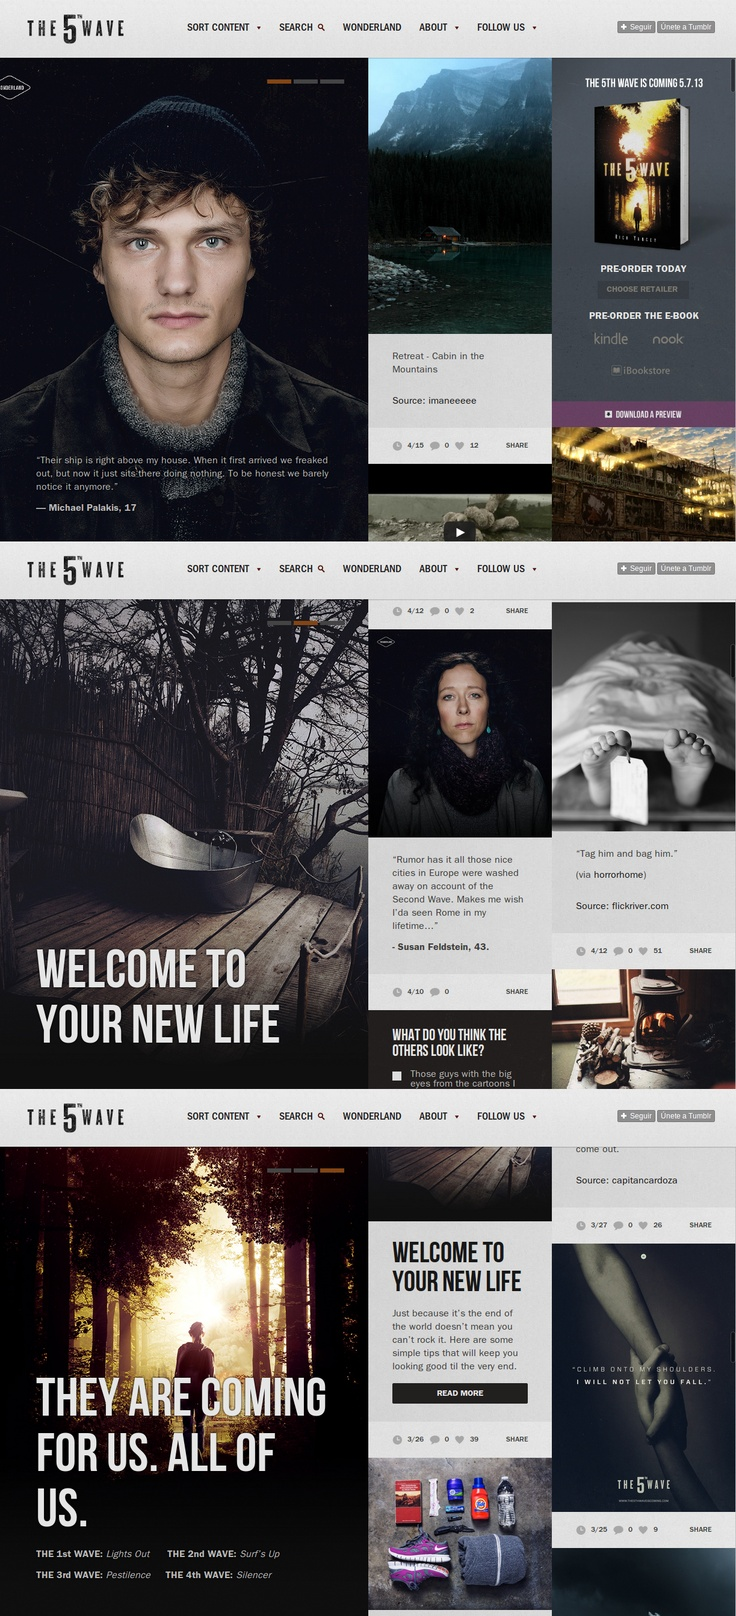 The 5th Wave Is Coming website... Amazing! So interactive and unique for a book website, really augments the story! Via Awwwards Website: http://the5thwaveiscoming.com/